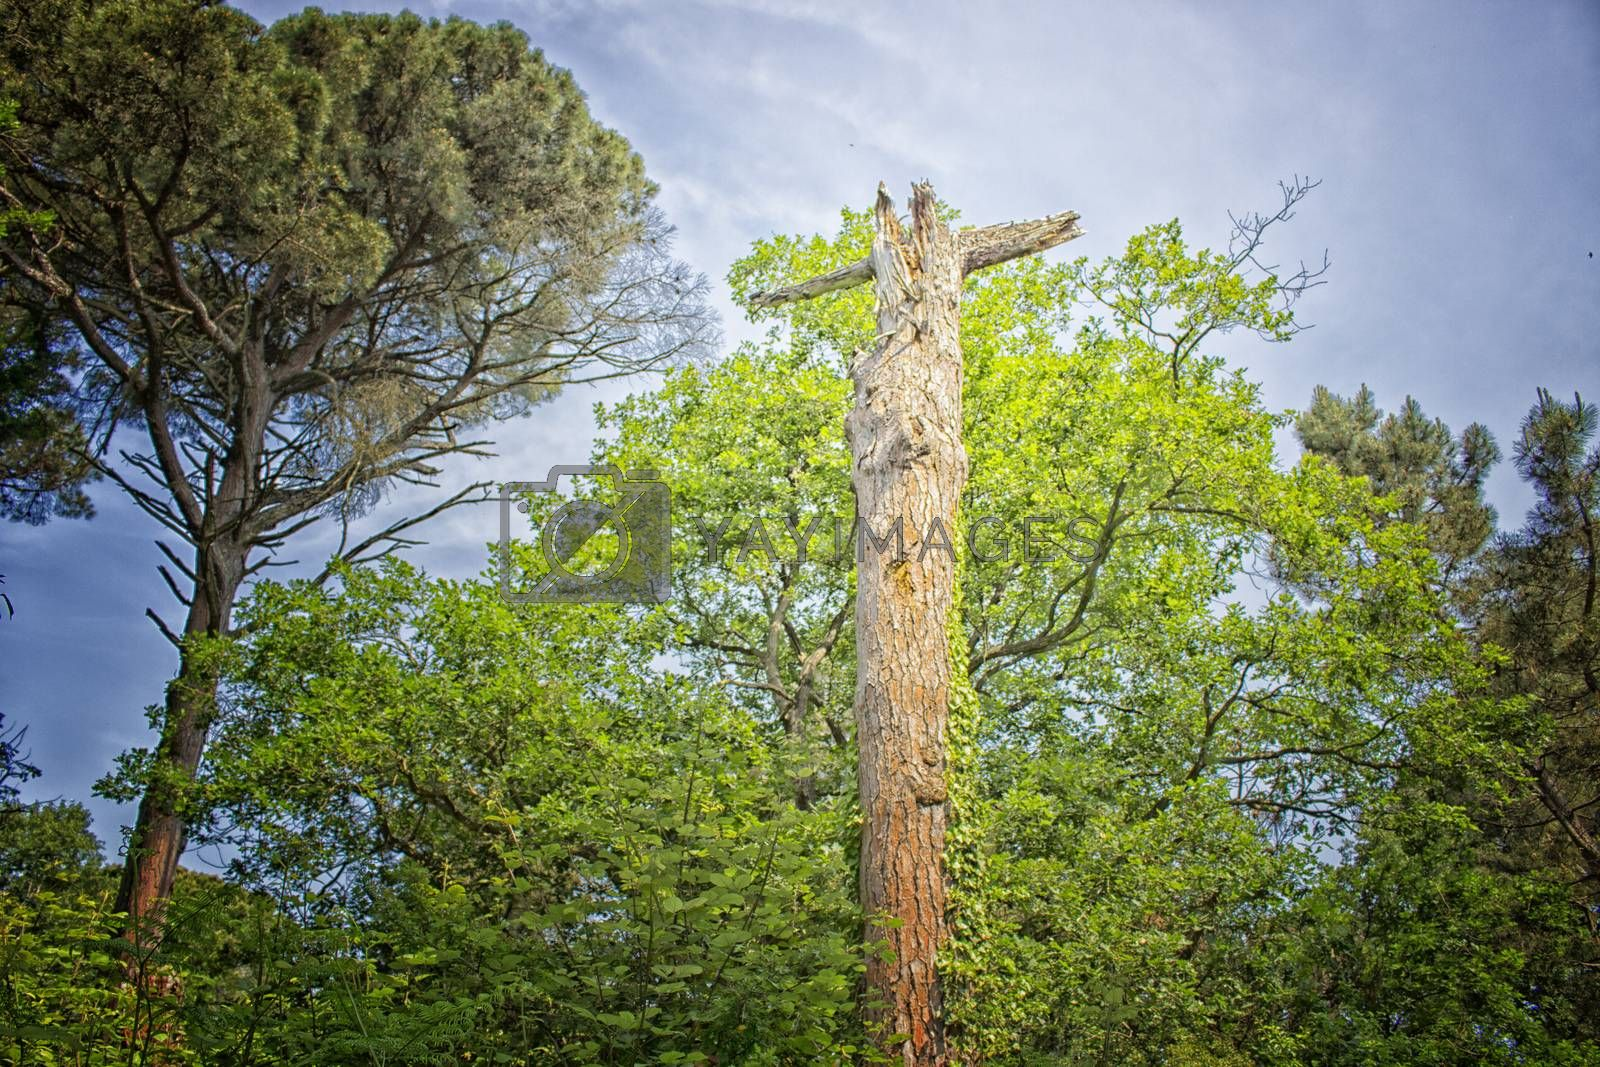 Natural Cross in Pinewood forest near Marina Romea by paocasa